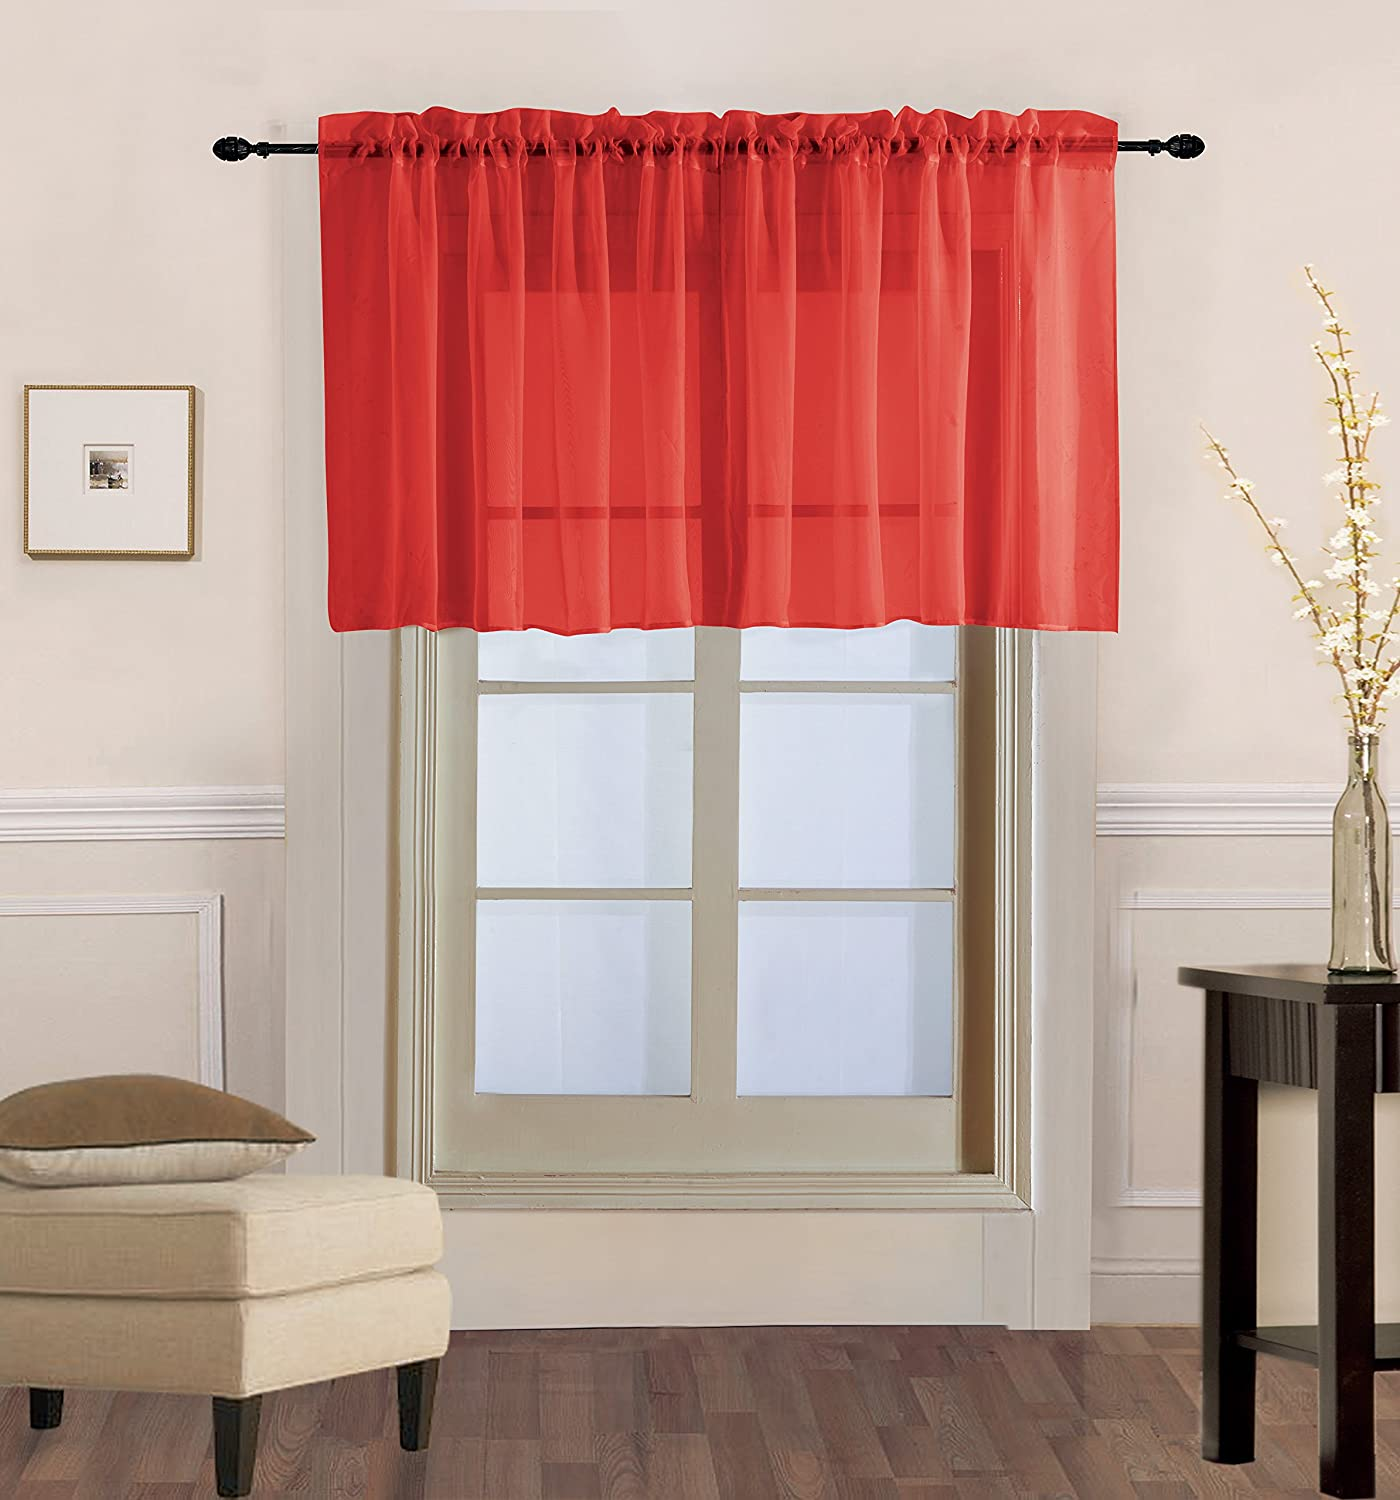 "Luxury Discounts 2 PC Solid Rod Pocket Sheer Window Curtain Treatment Drape Voile Panels In Variety Of Colors (55""x36"", Red)"